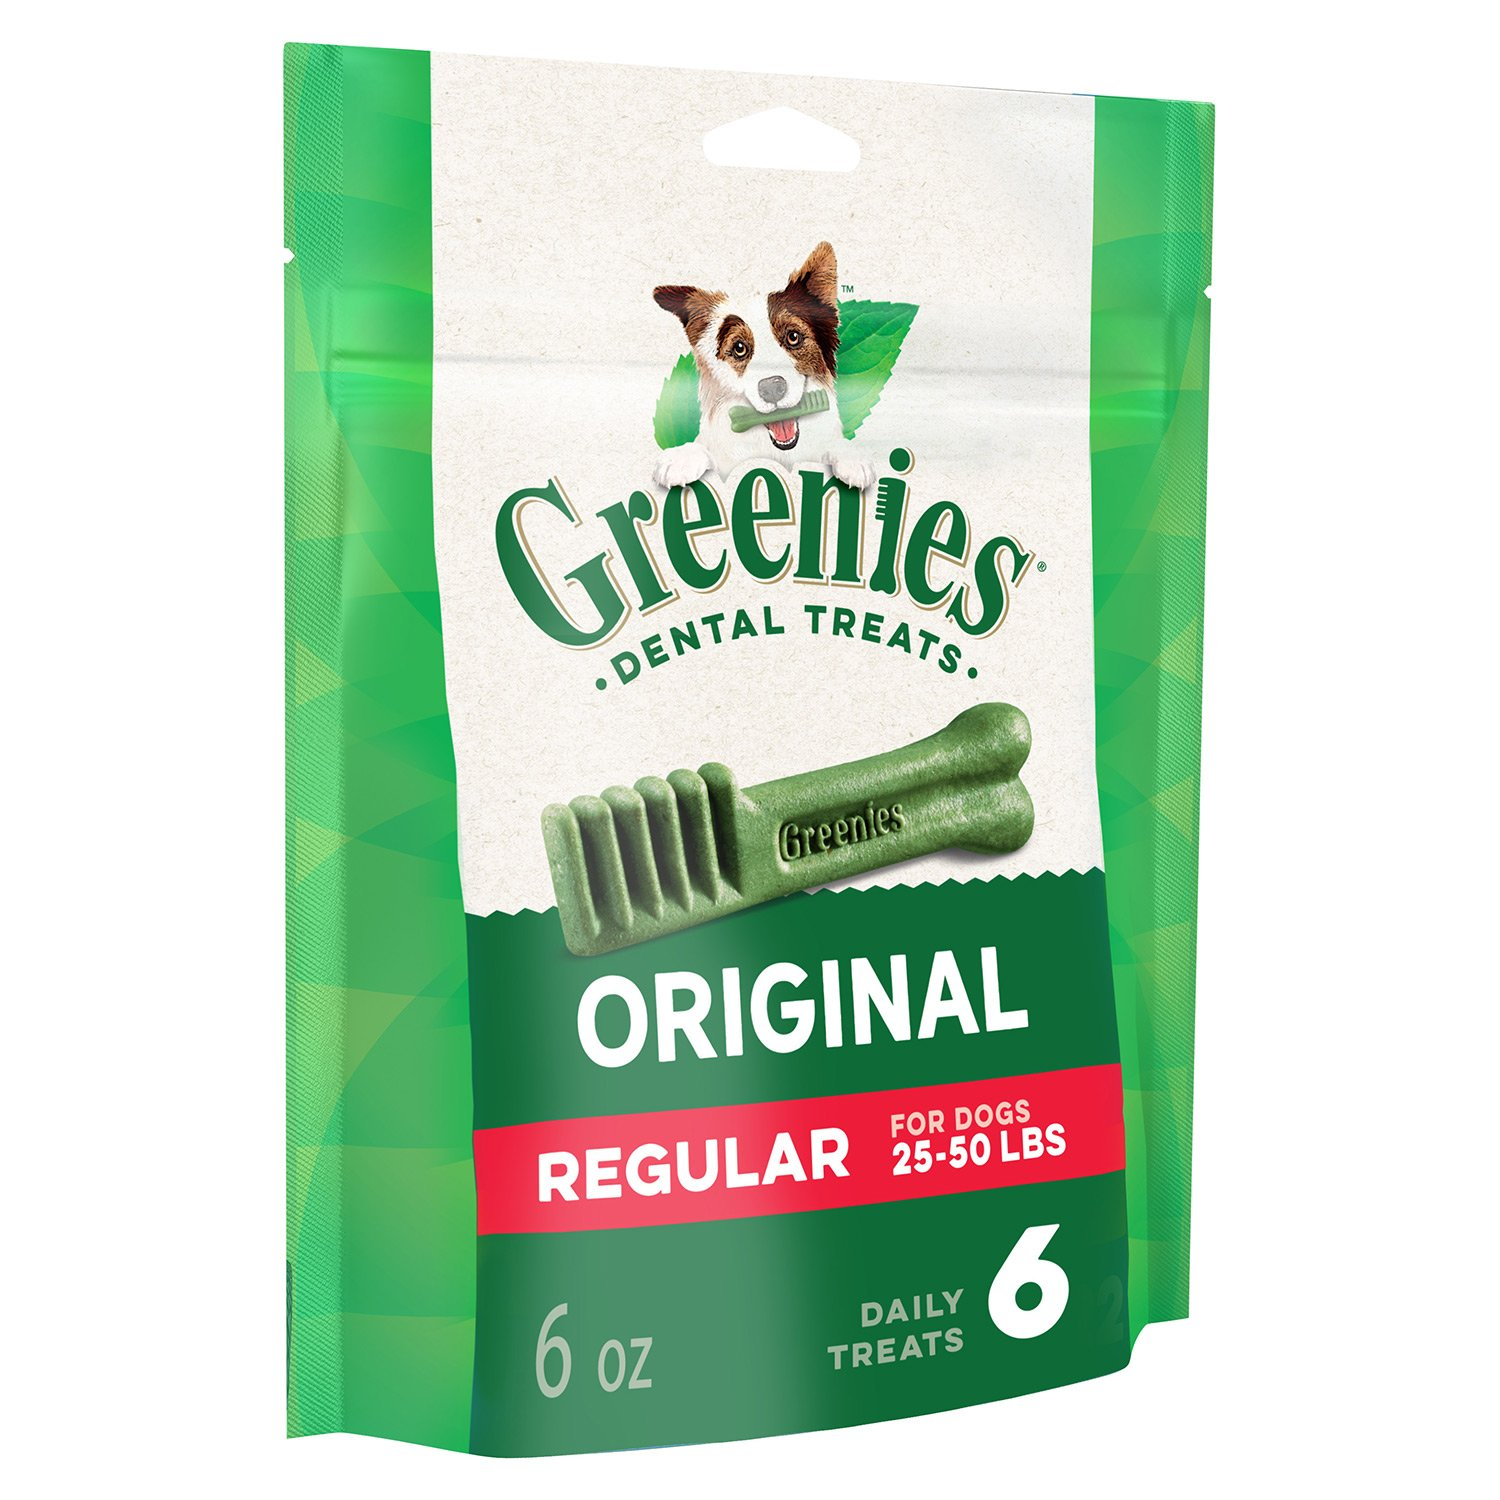 Greenies Original dentaire friandises pour chien Mars Incorporated 10109080